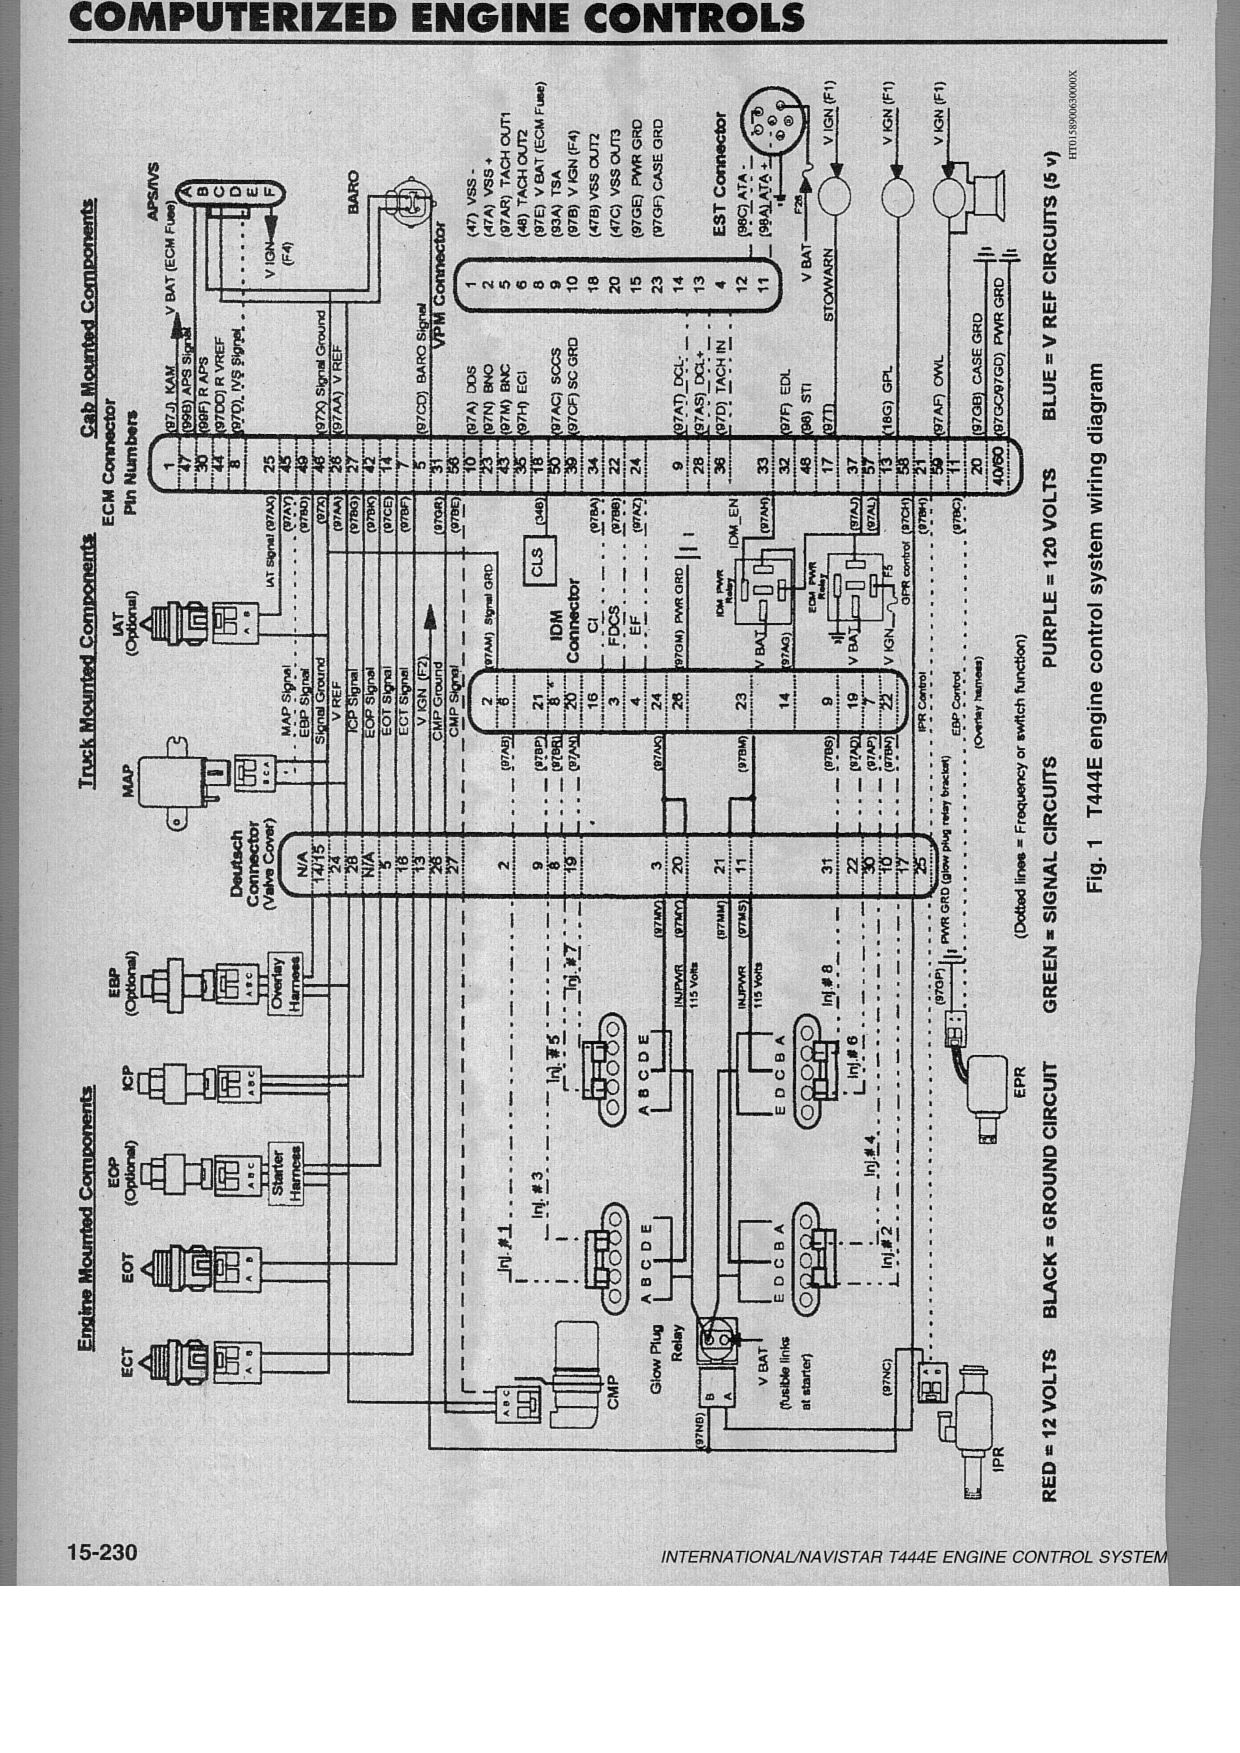 39b4c4e6-ee71-40f5-9da8-0185b66b432f_International DT444 schematic.jpg